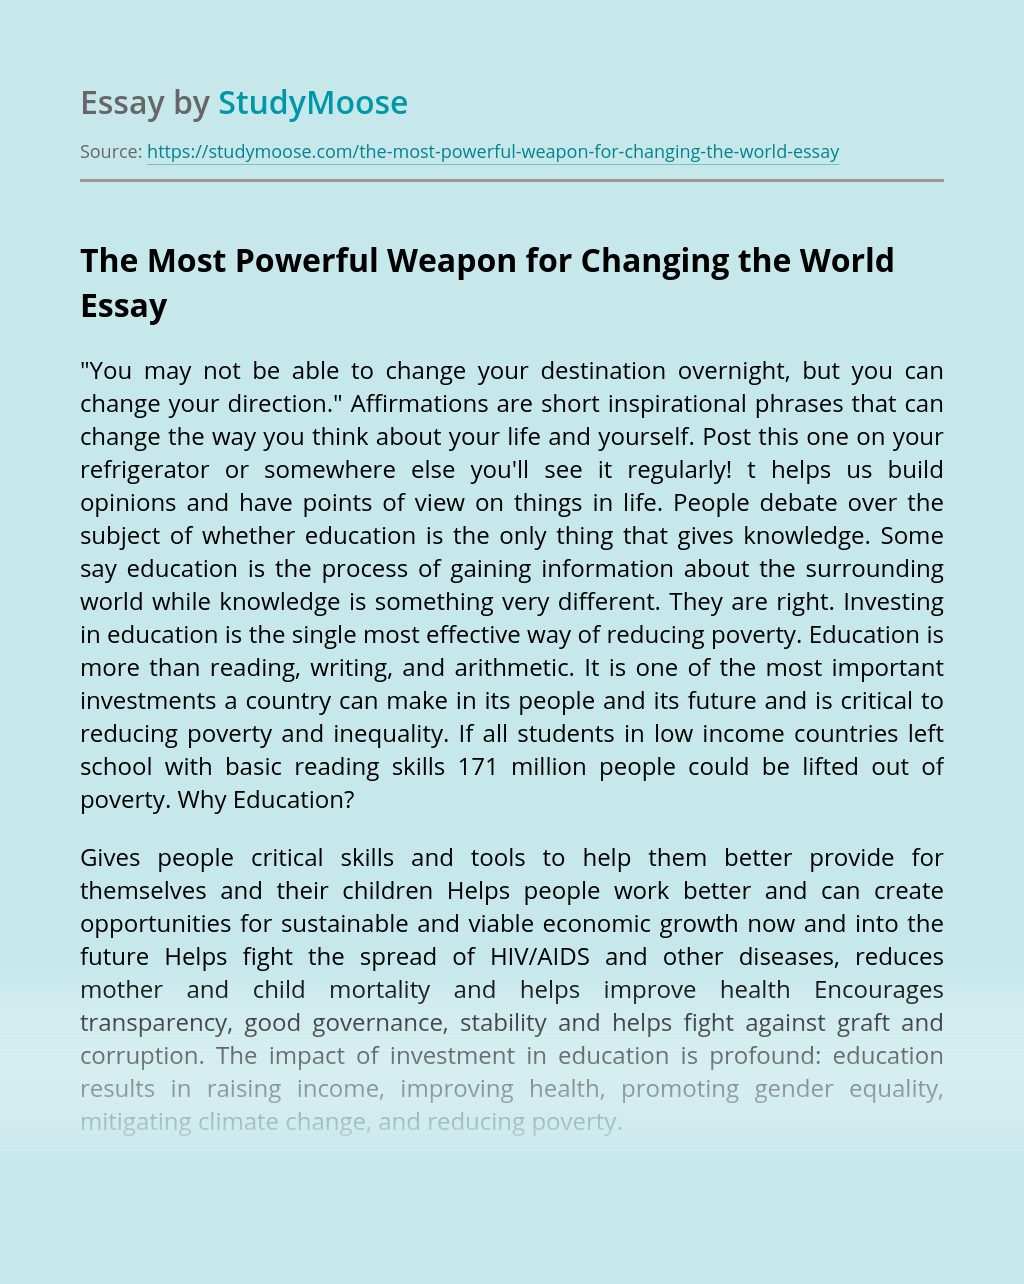 The Most Powerful Weapon for Changing the World